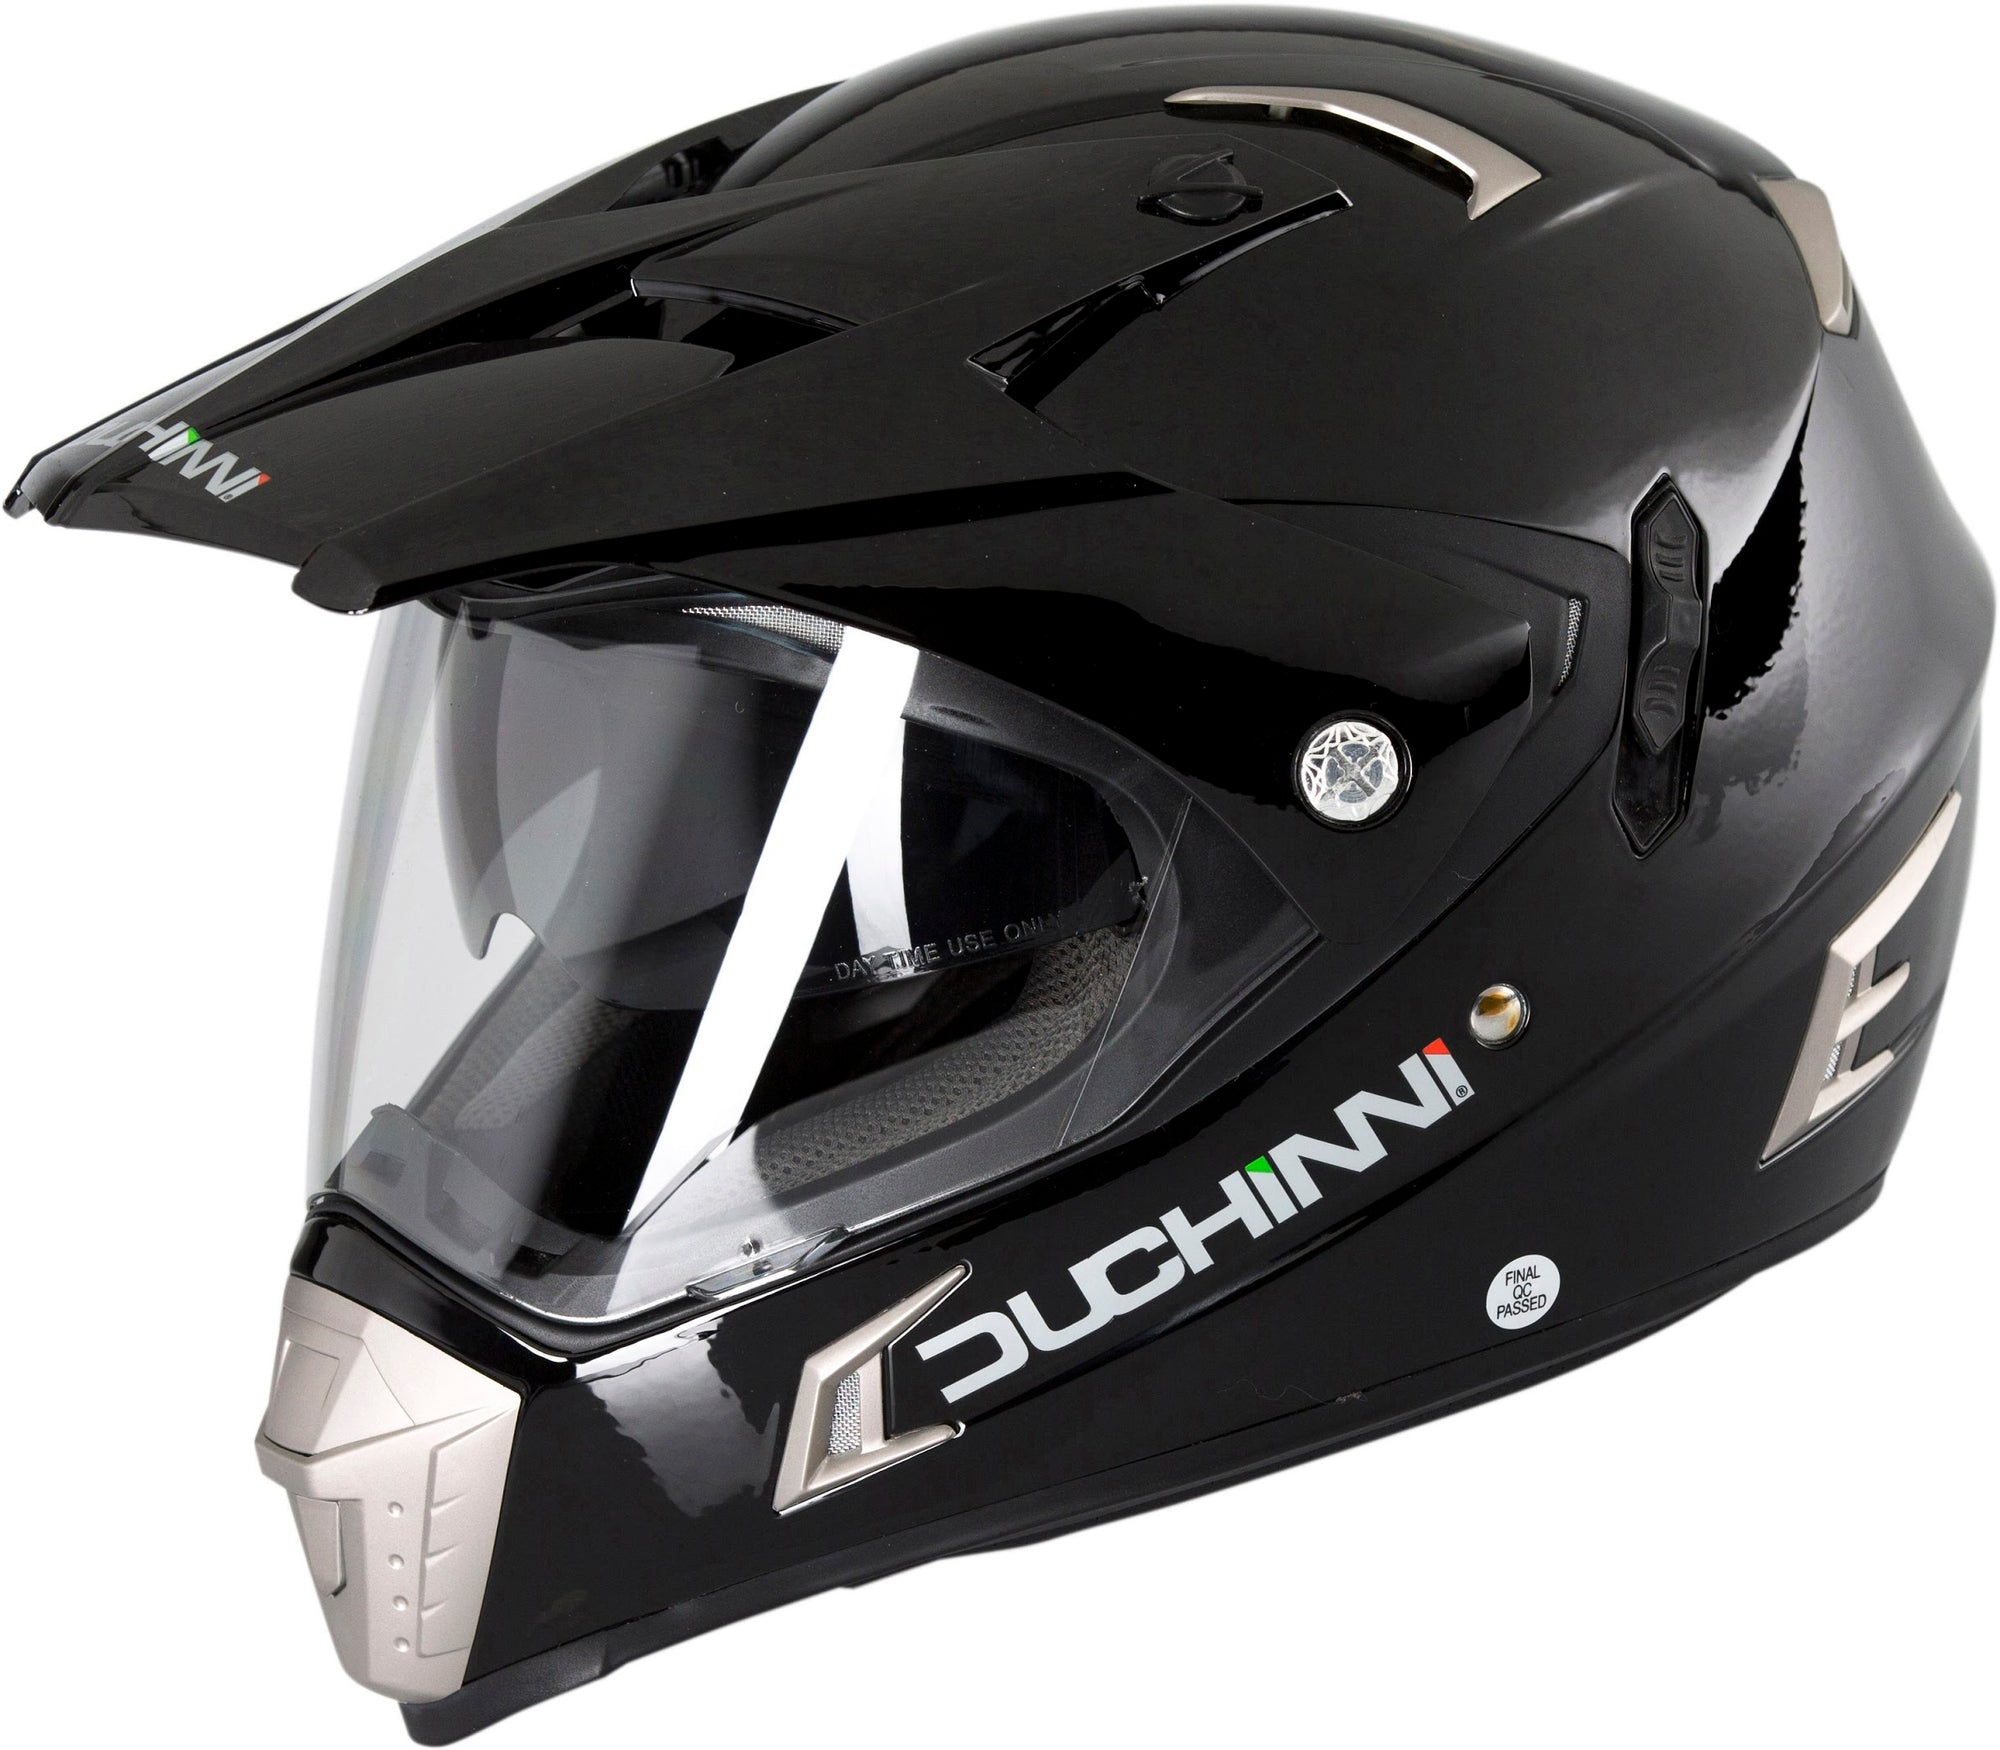 D311 Dual Adventure, Helmet, Duchinni - Averys Motorcycles